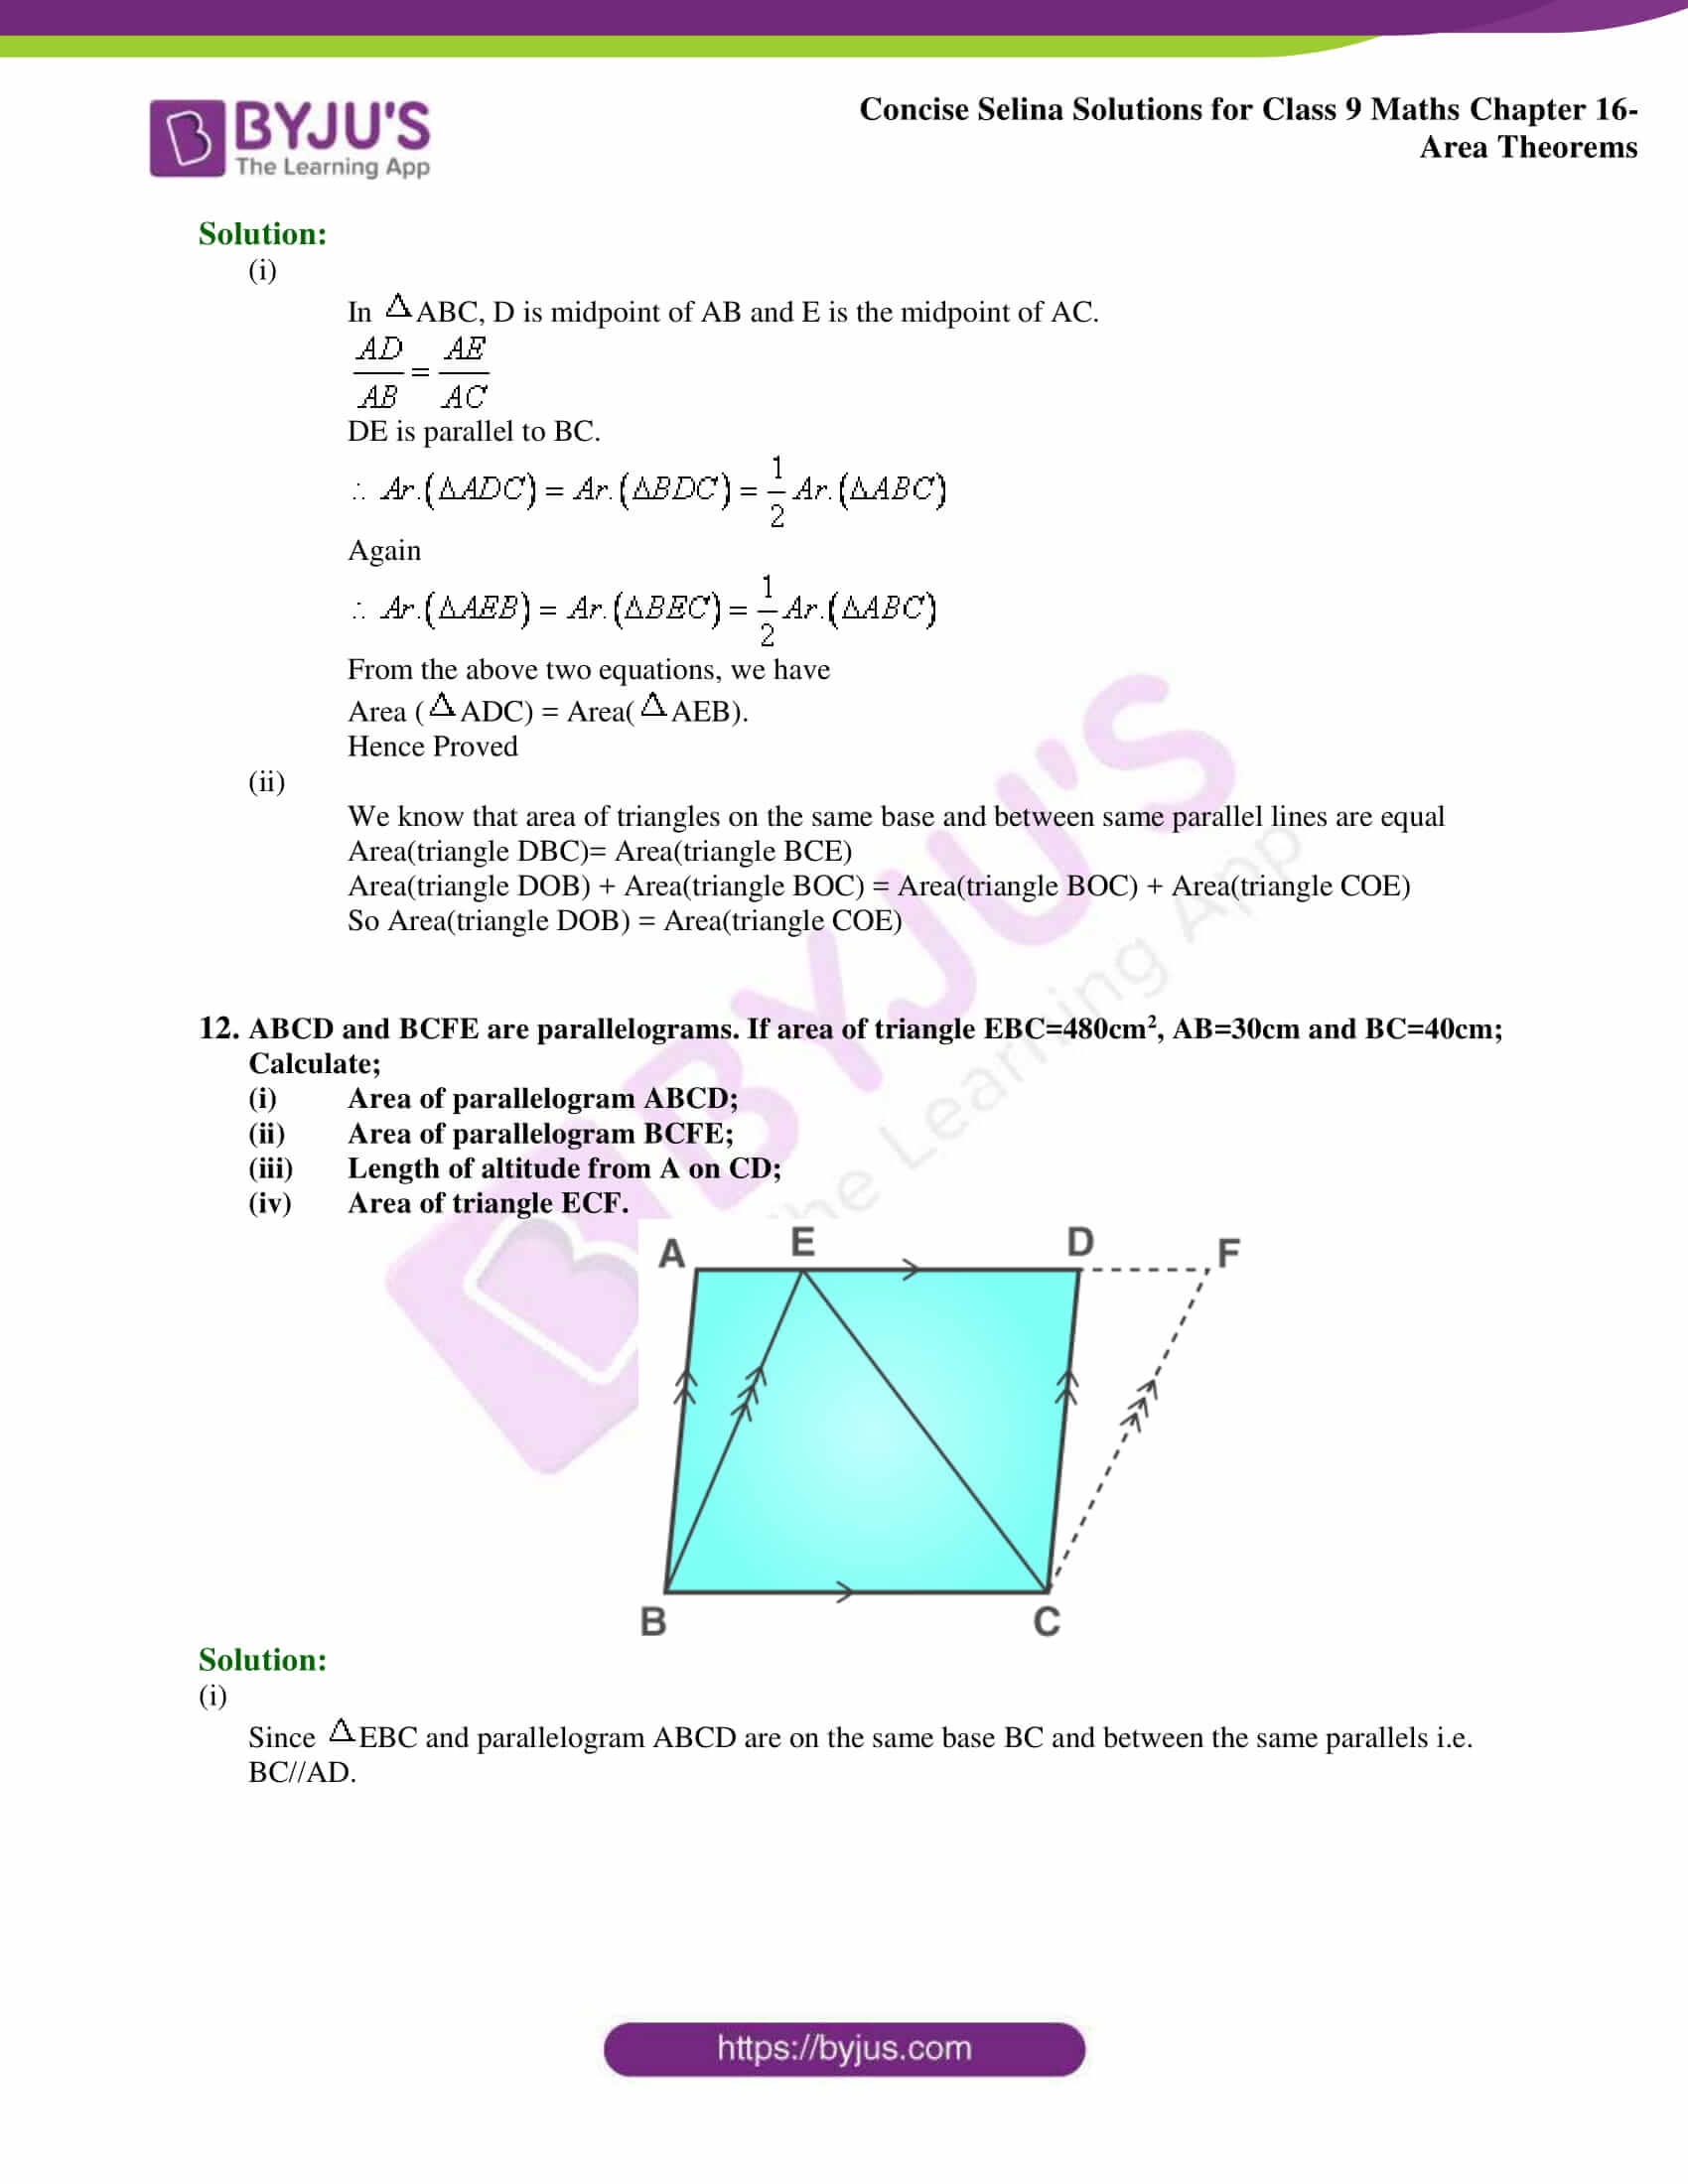 Concise Selina Solutions Class 9 Maths Chapter 16 Area Theorems part 10